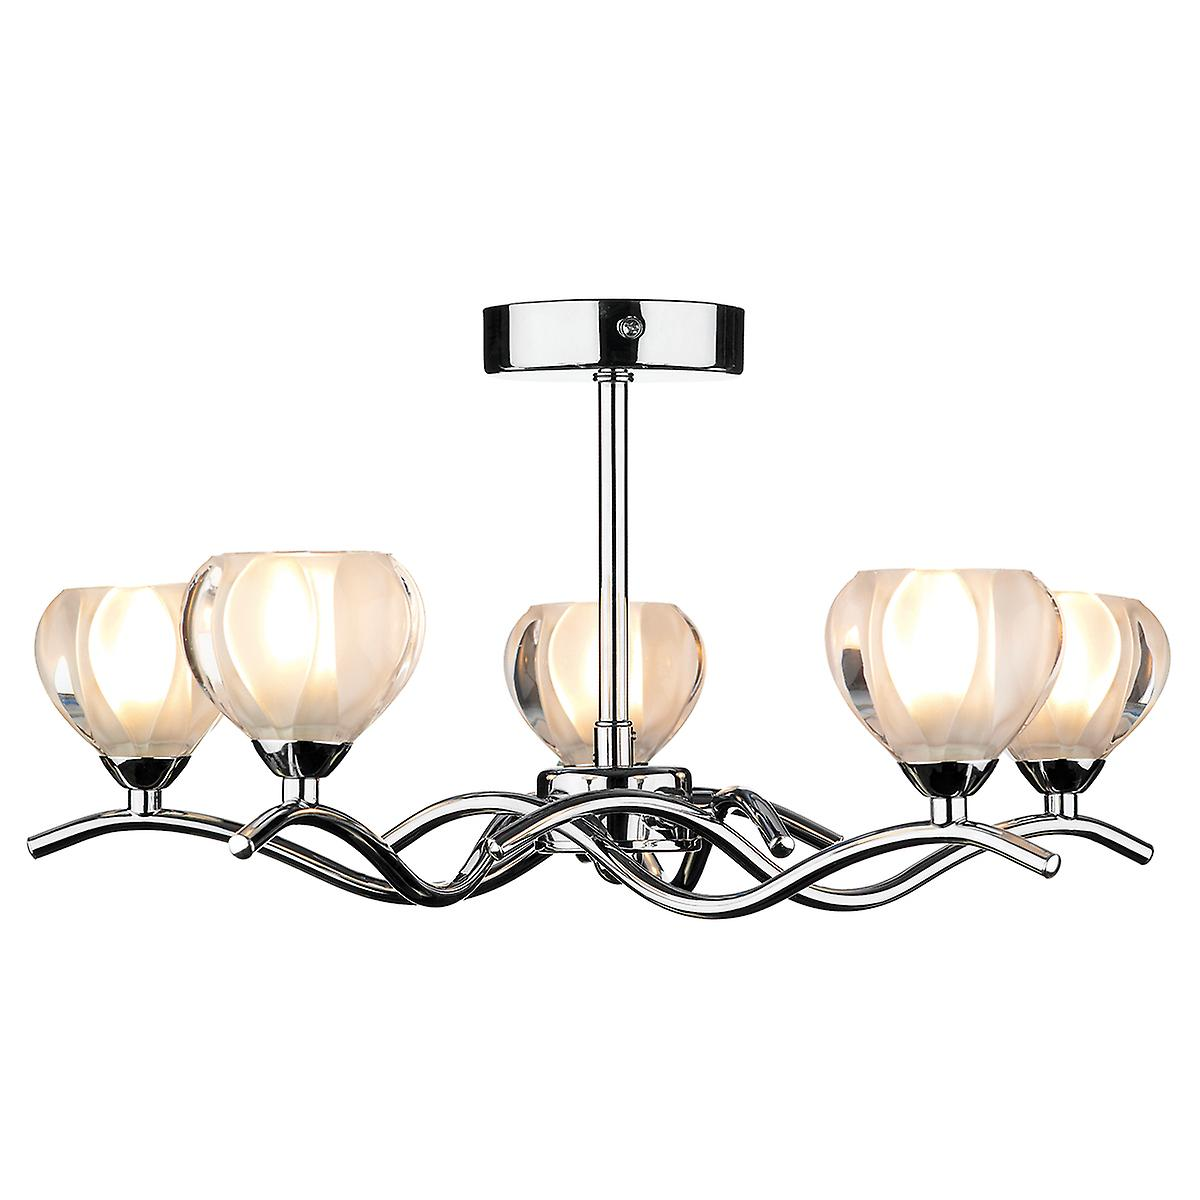 Dar CYN0550 Cynthia Modern Chrome 5 Arm Semi-Flush Ceiling Light With Glass